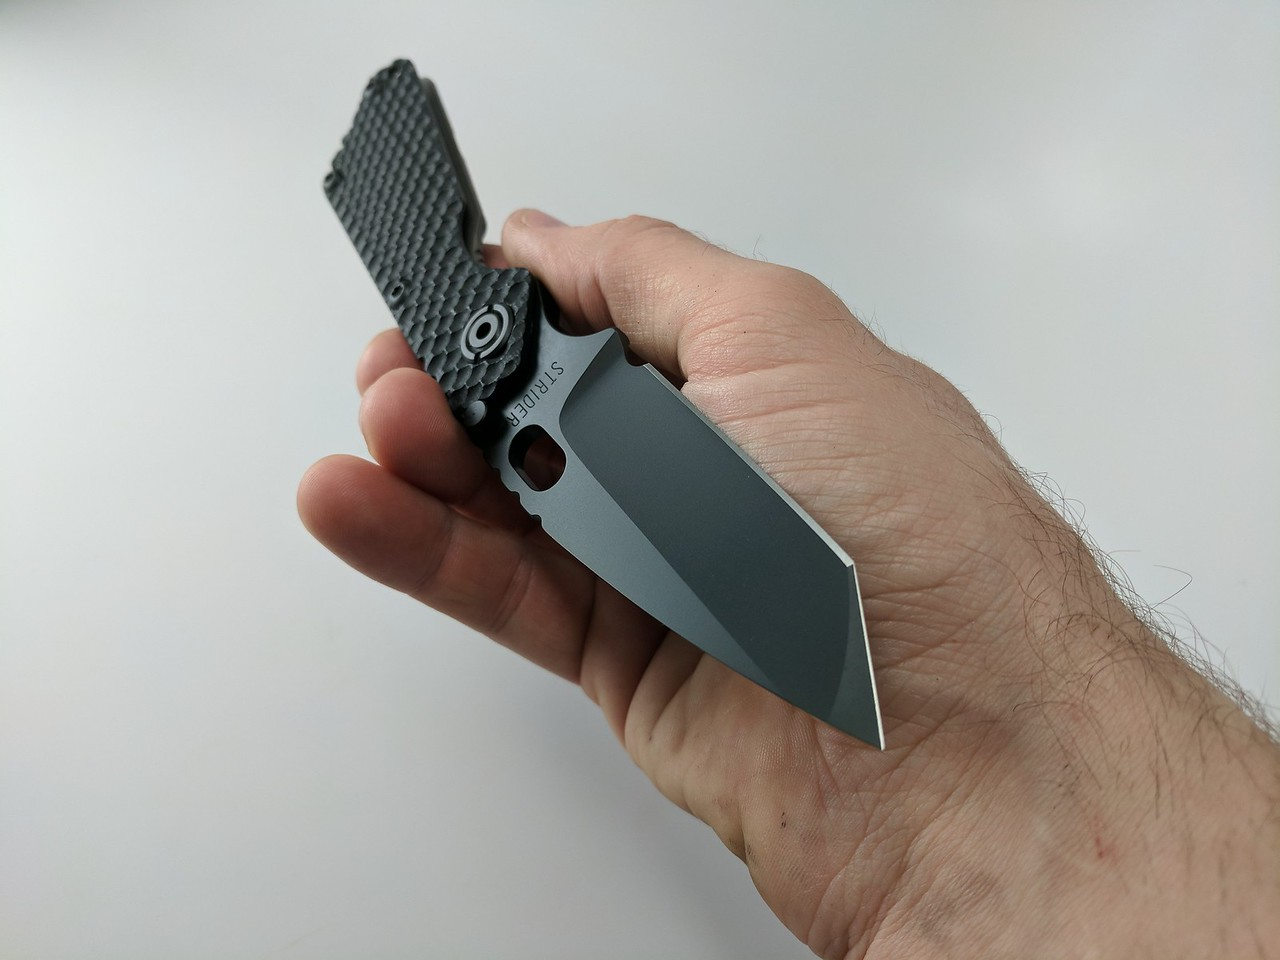 strider sng, smf, PVD, DLC coating, blacked out, murderered out, razor edge knives